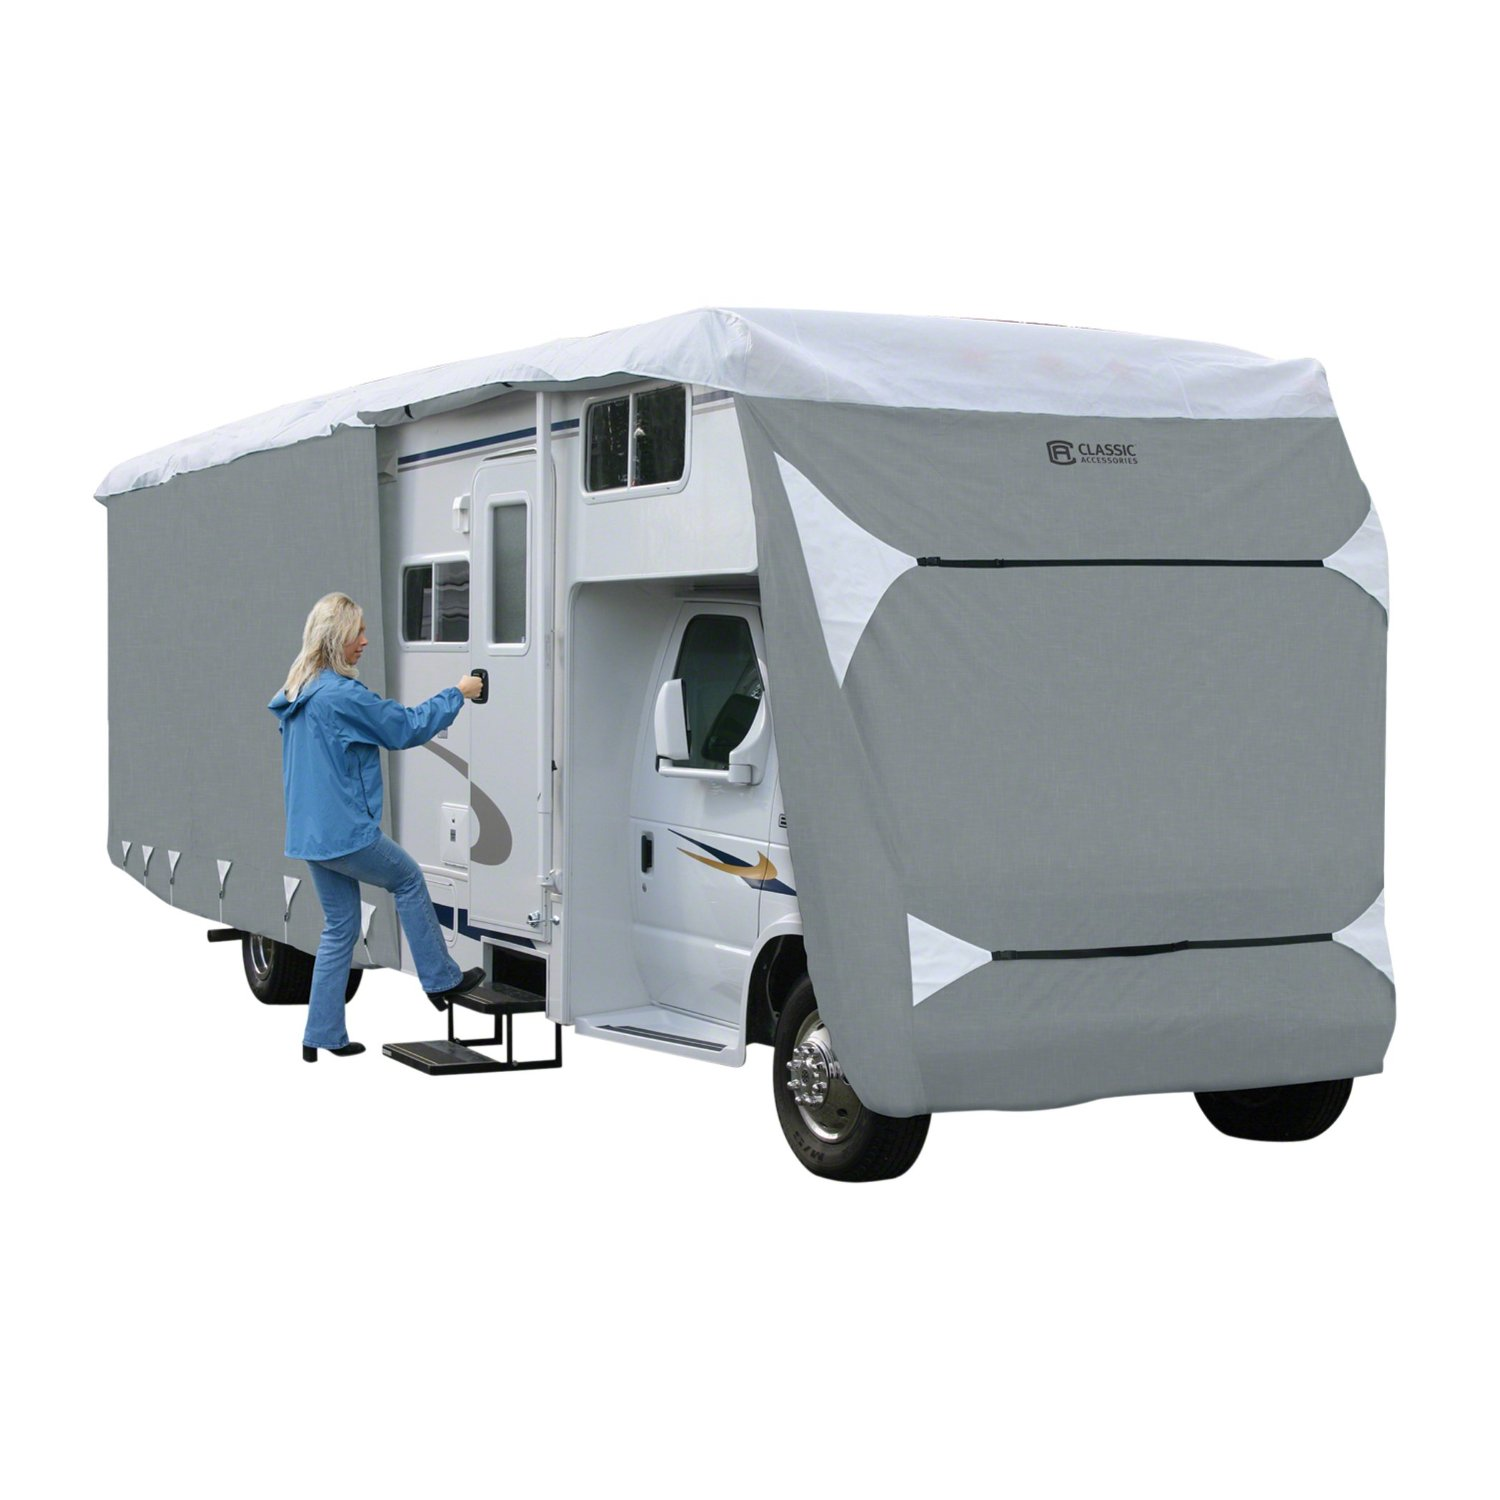 Rv Cover Store Great Prices Large Selection Order